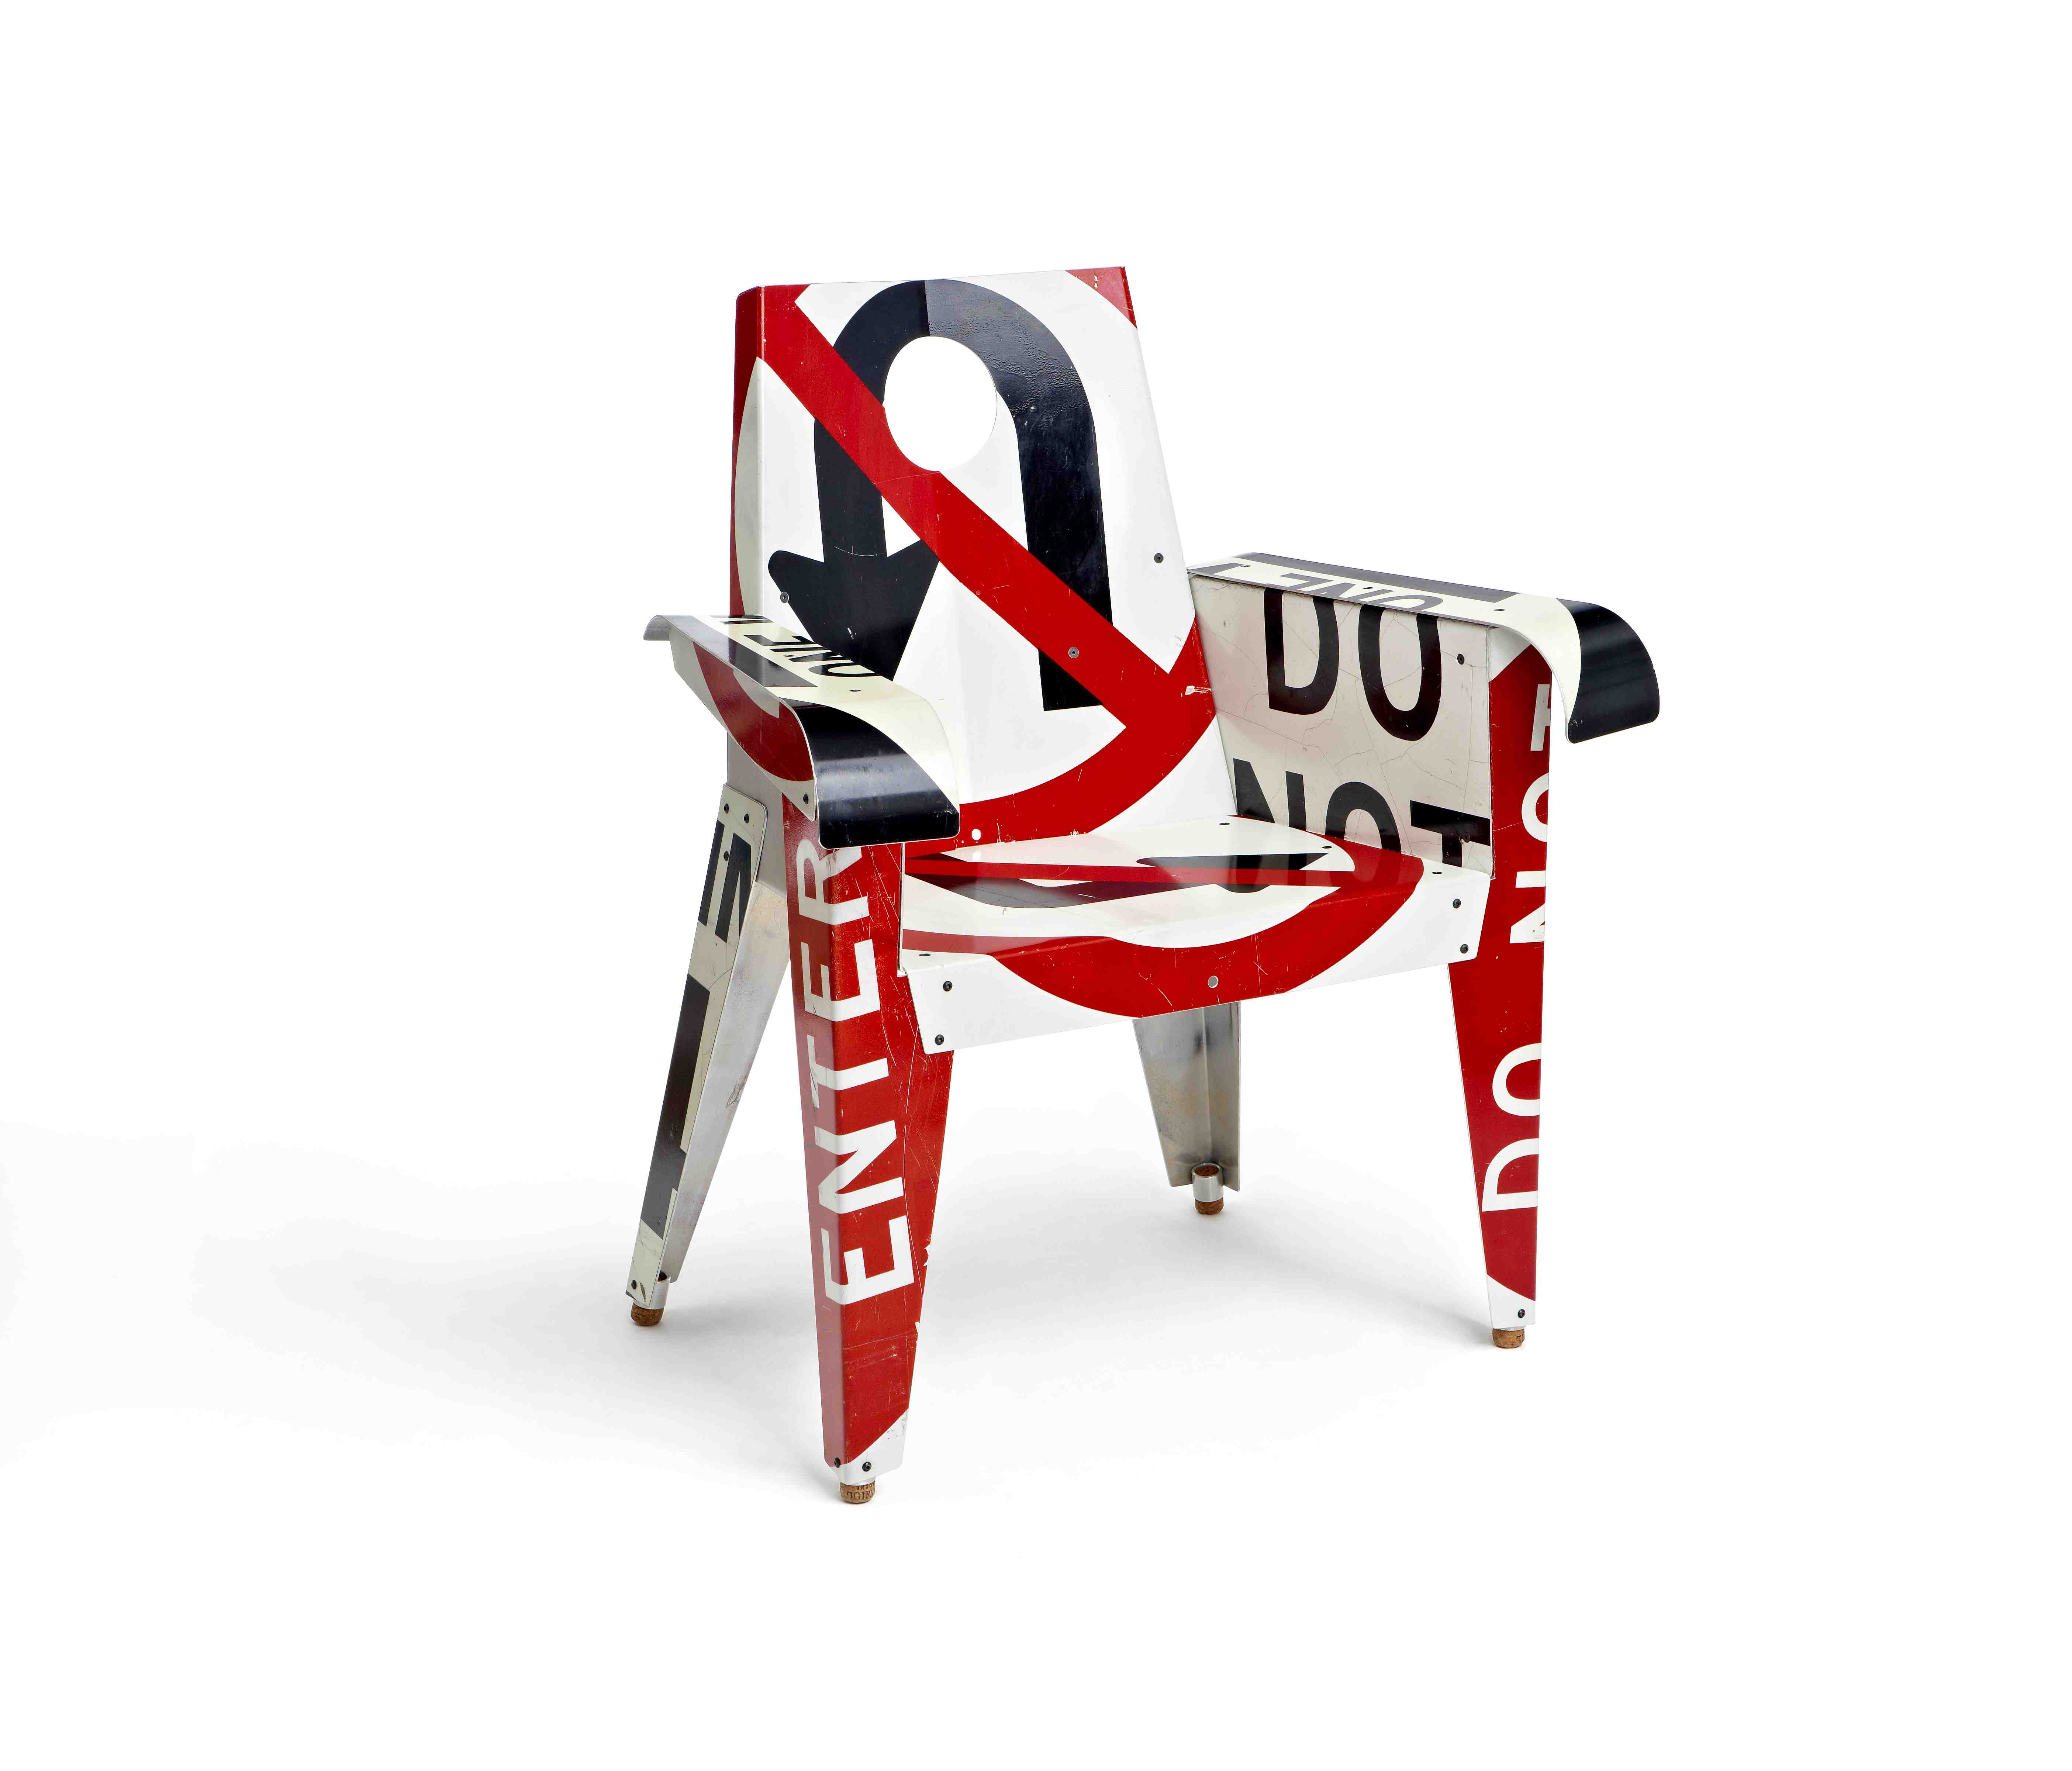 Designer Furniture Created From Abandoned Street Signs RecycleNation - Road sign furniture